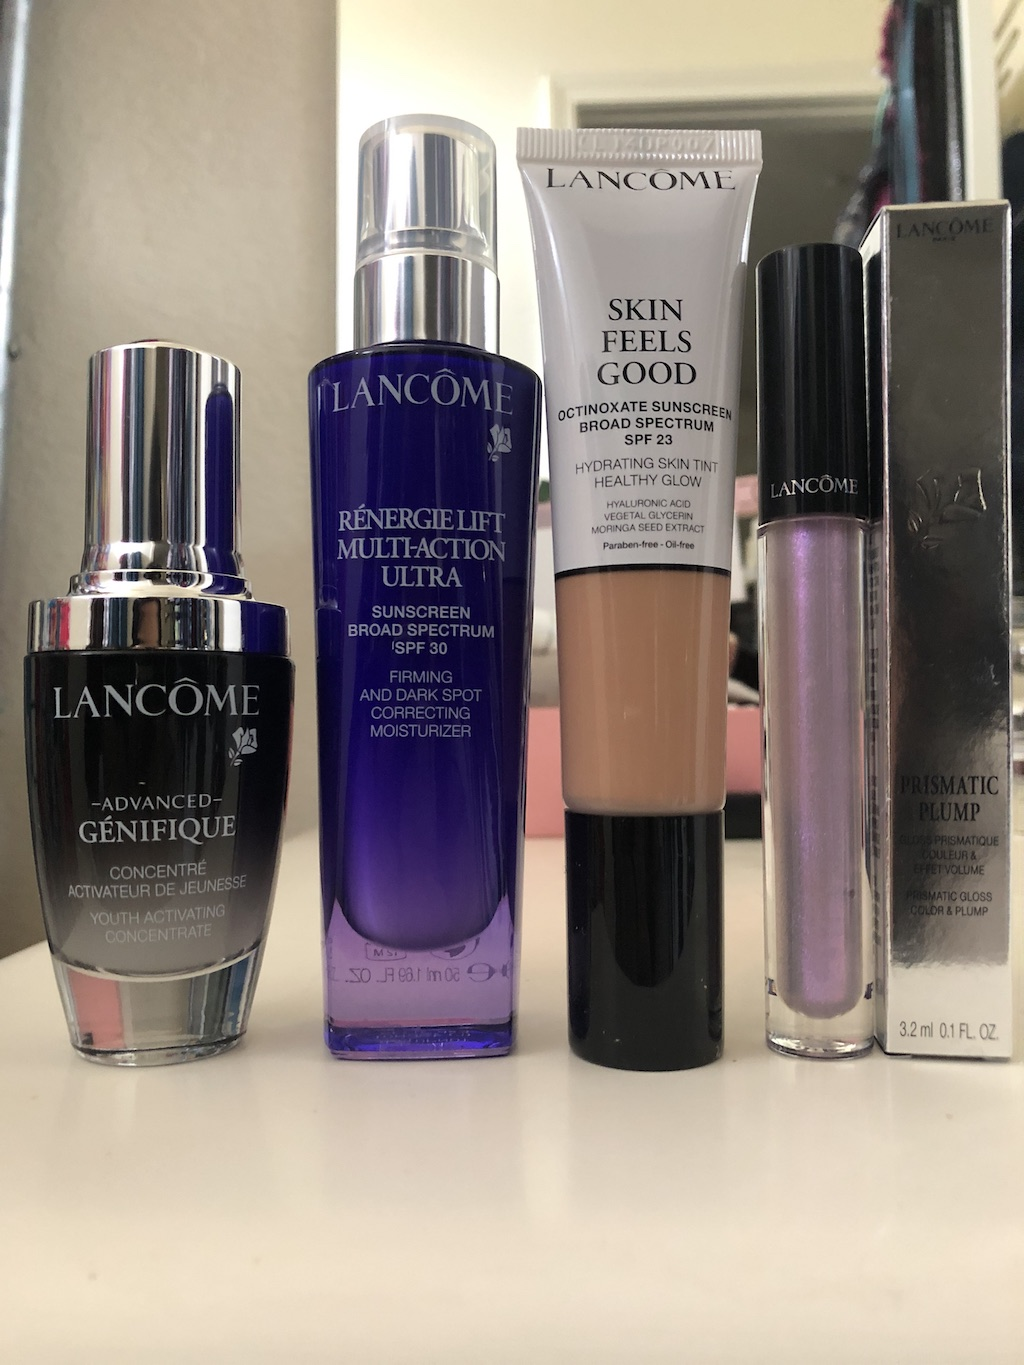 Lancome Skin Feels Good Influenster Voxbox 3